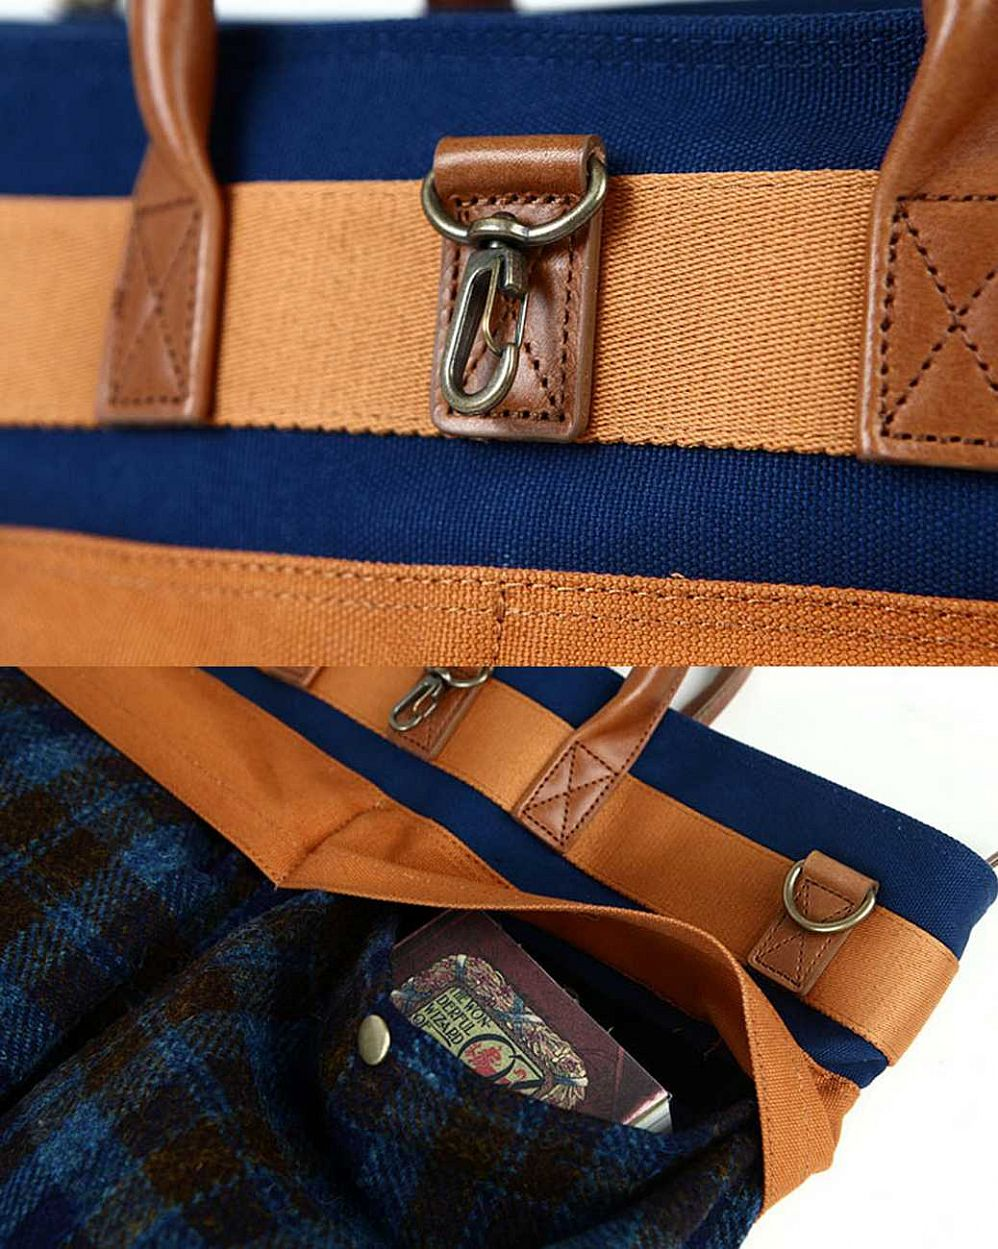 Сумка The earth Company Harris Tweed  (England) Helmet bag blue цена в Москве